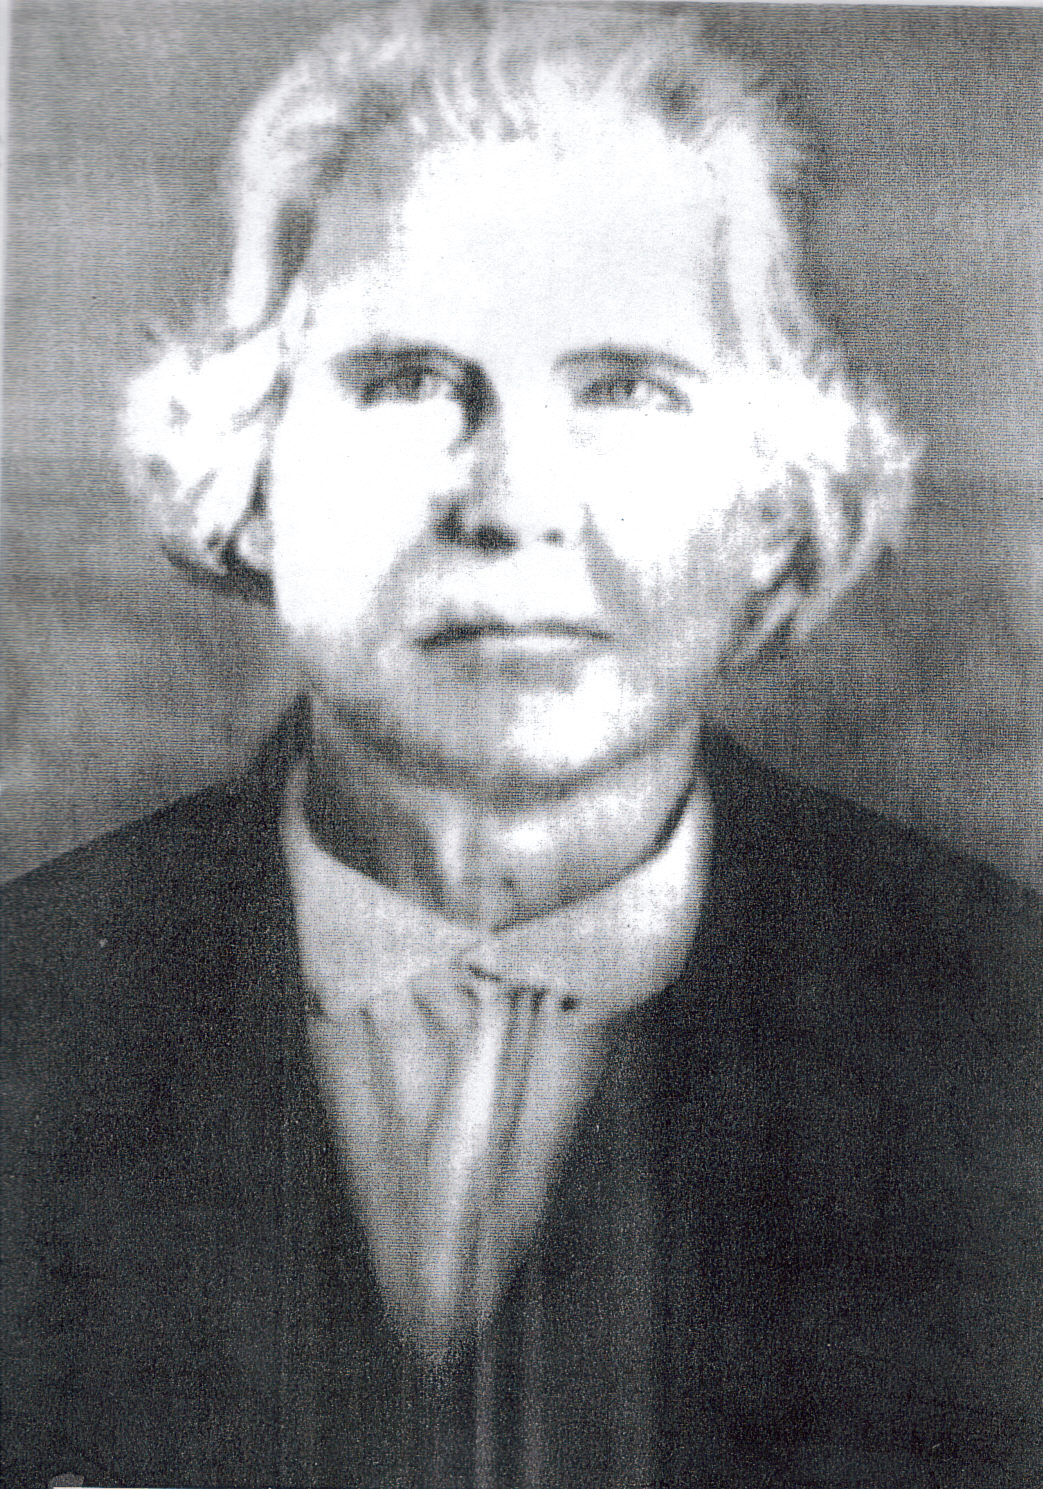 Dr James Monroe Boone Arkansas Country Doctor Museum Found 97 result for james boone. arkansas country doctor museum